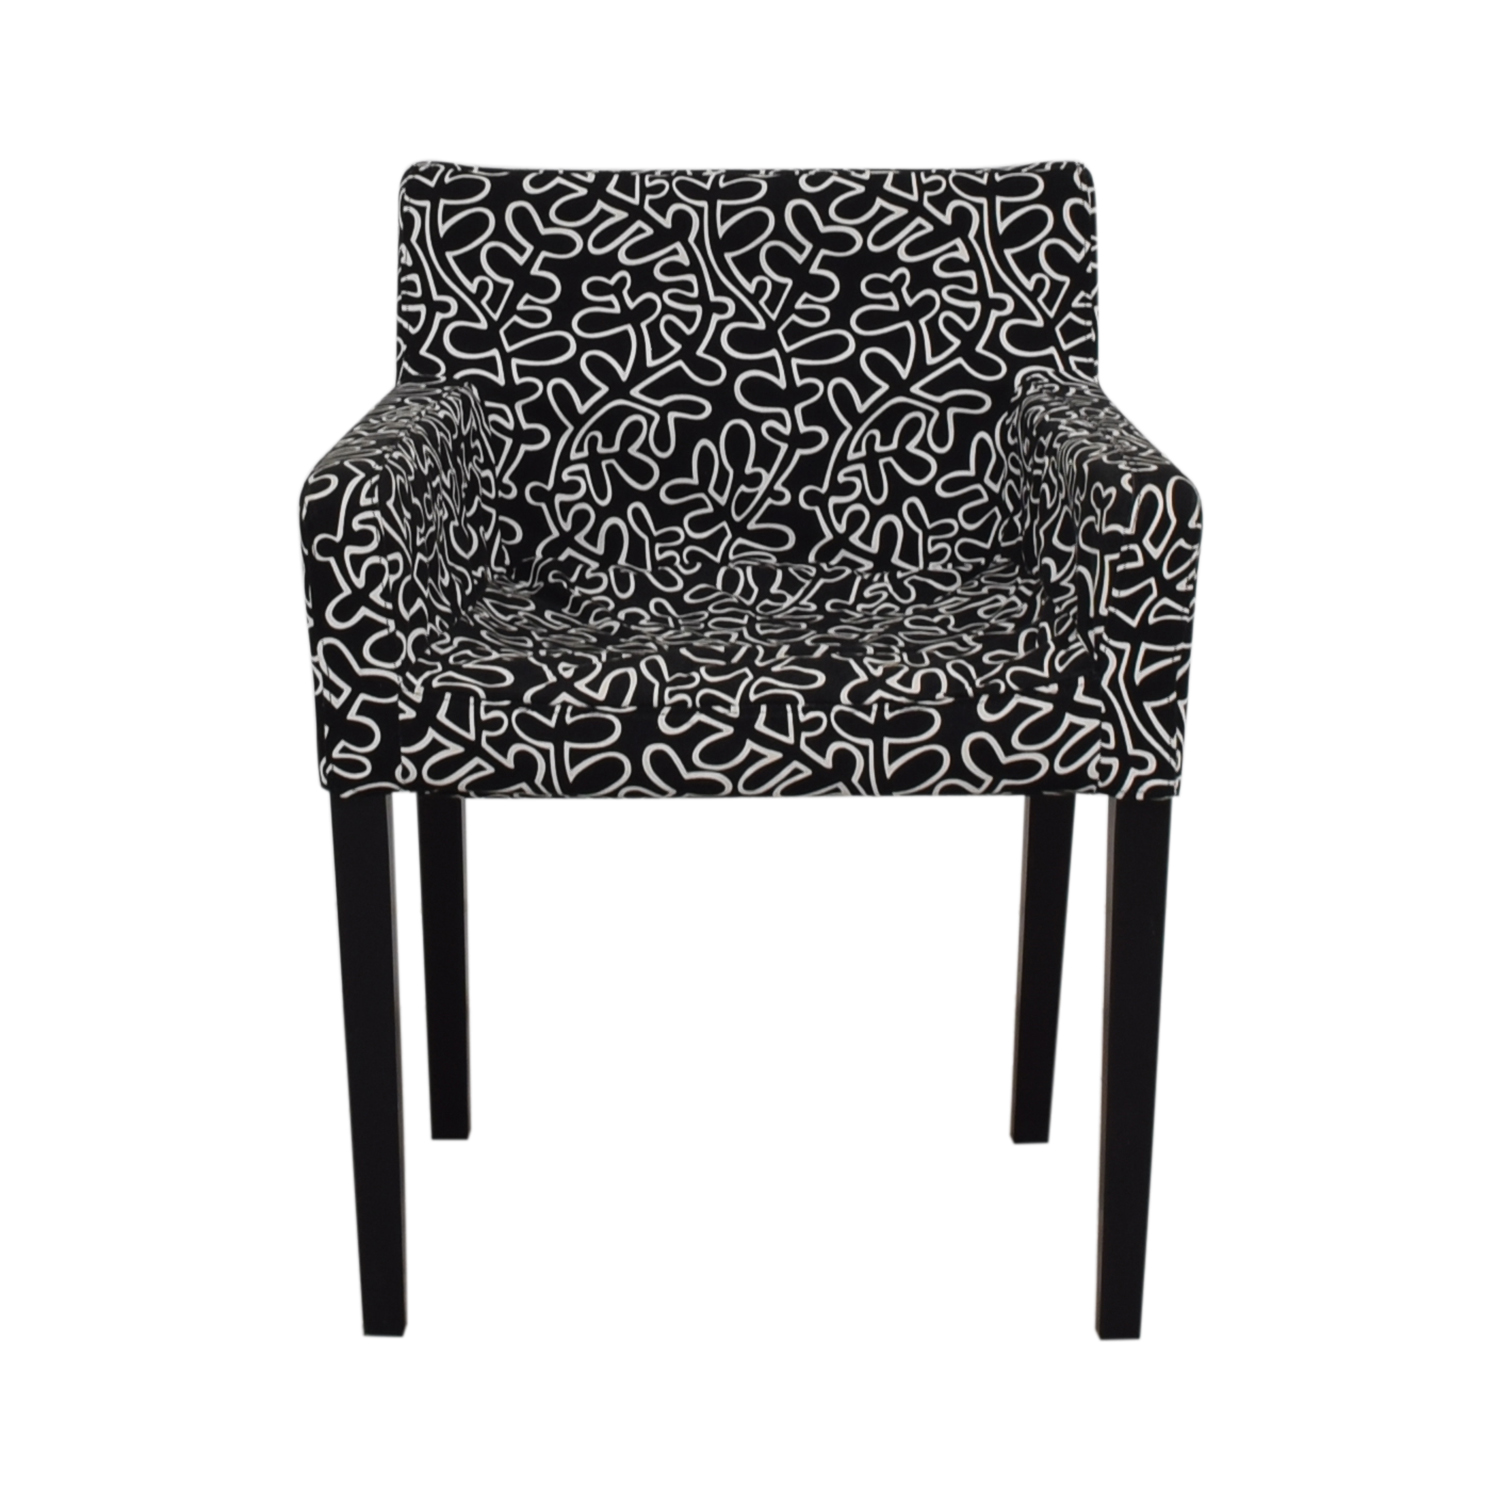 Black and White Print Chair sale